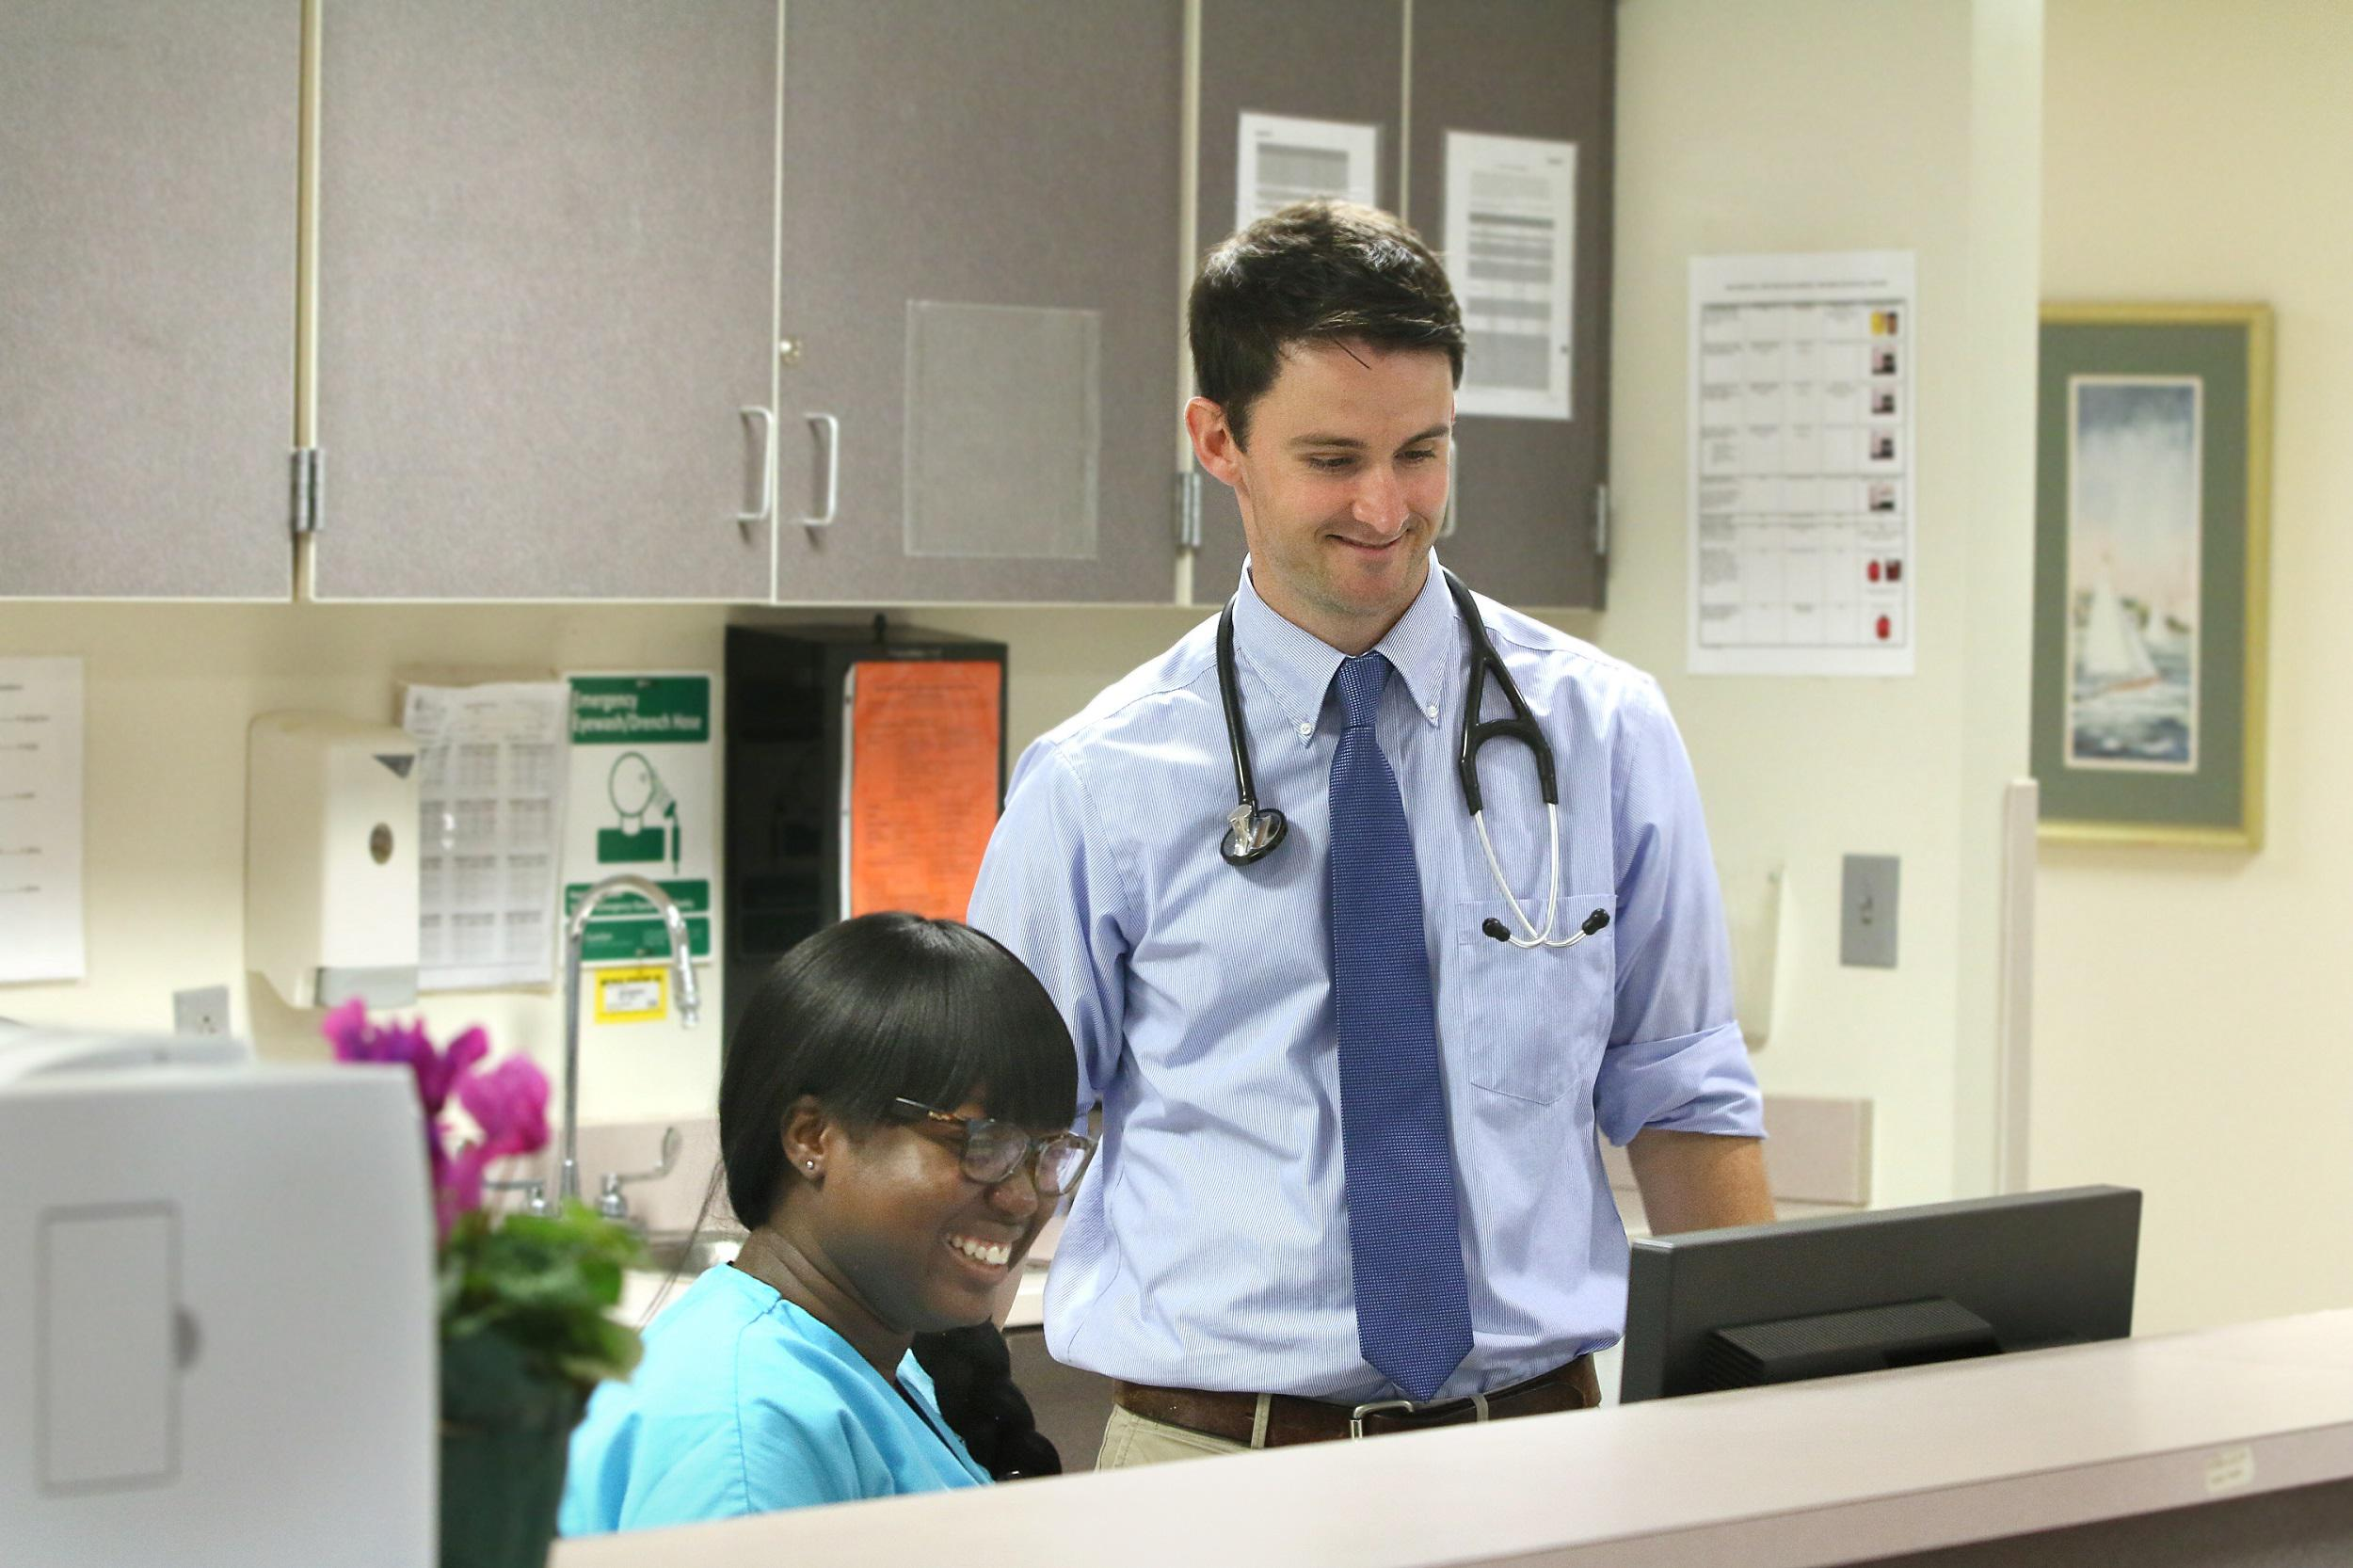 Andrew Schreiner, M.D. in clinic at MUSC Health University Internal Medicine - Rutledge Tower